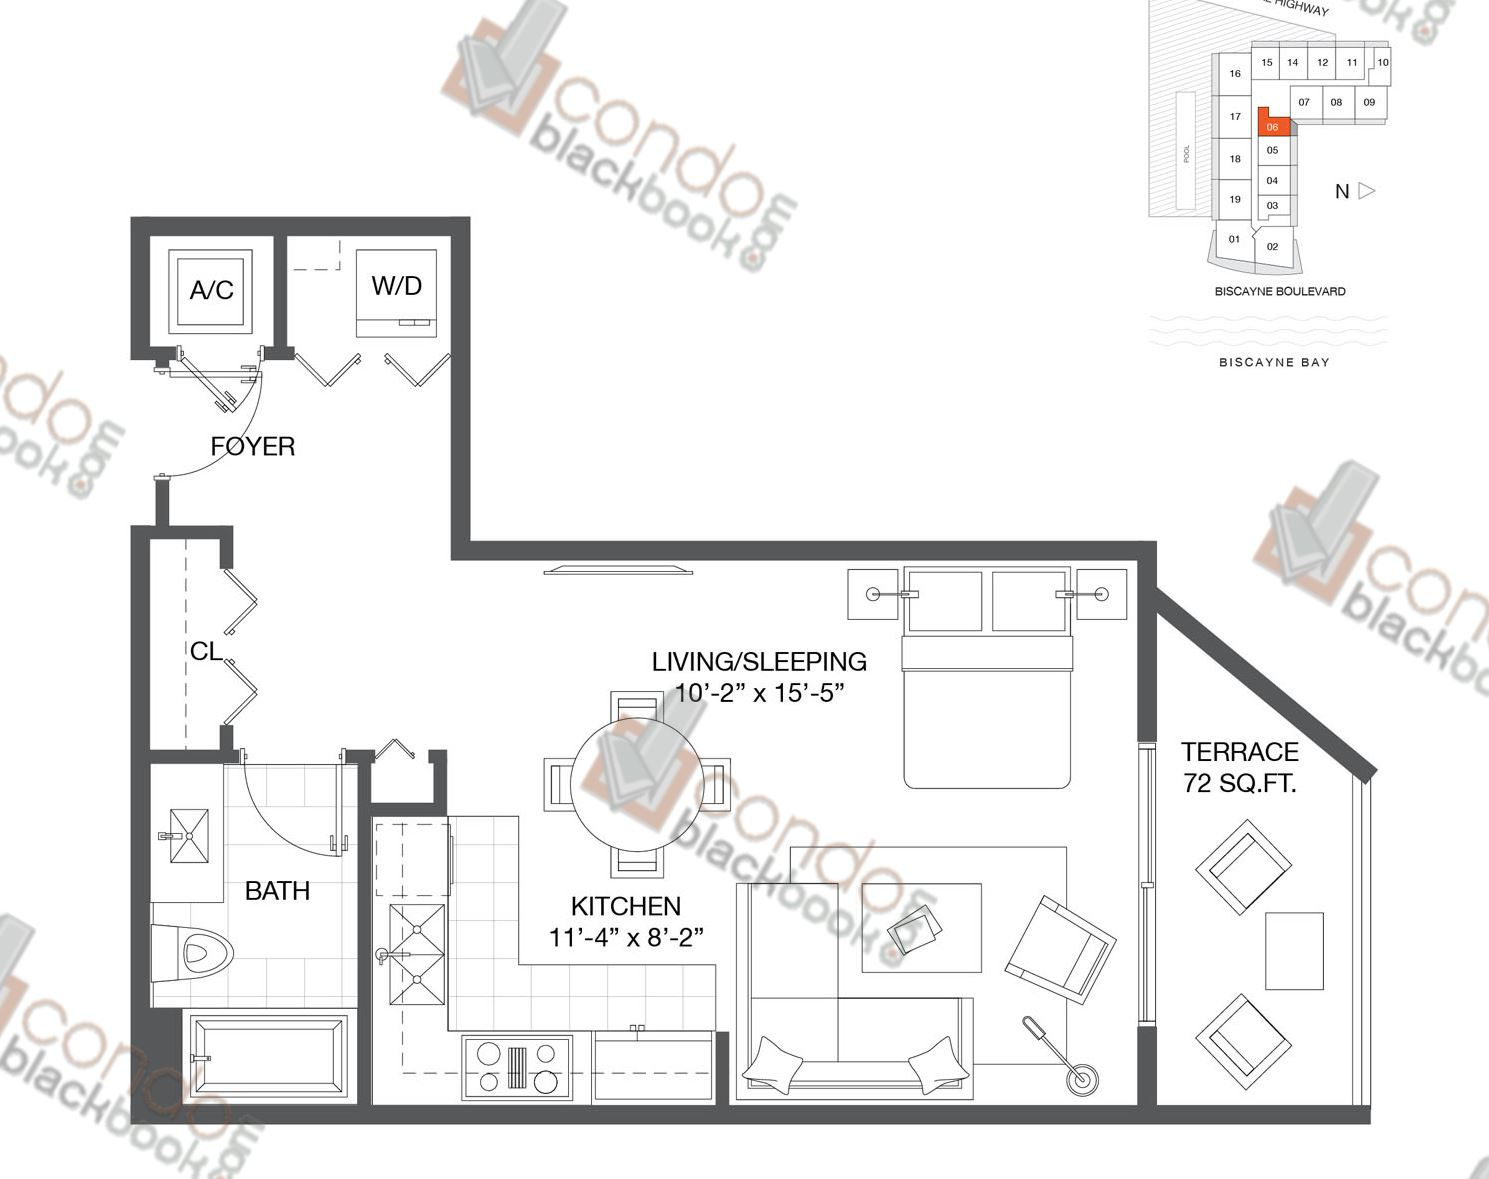 Floor plan for Baltus House Design District / Buena Vista Miami, model Residence 06, line 06, 0/1 bedrooms, 540 sq ft